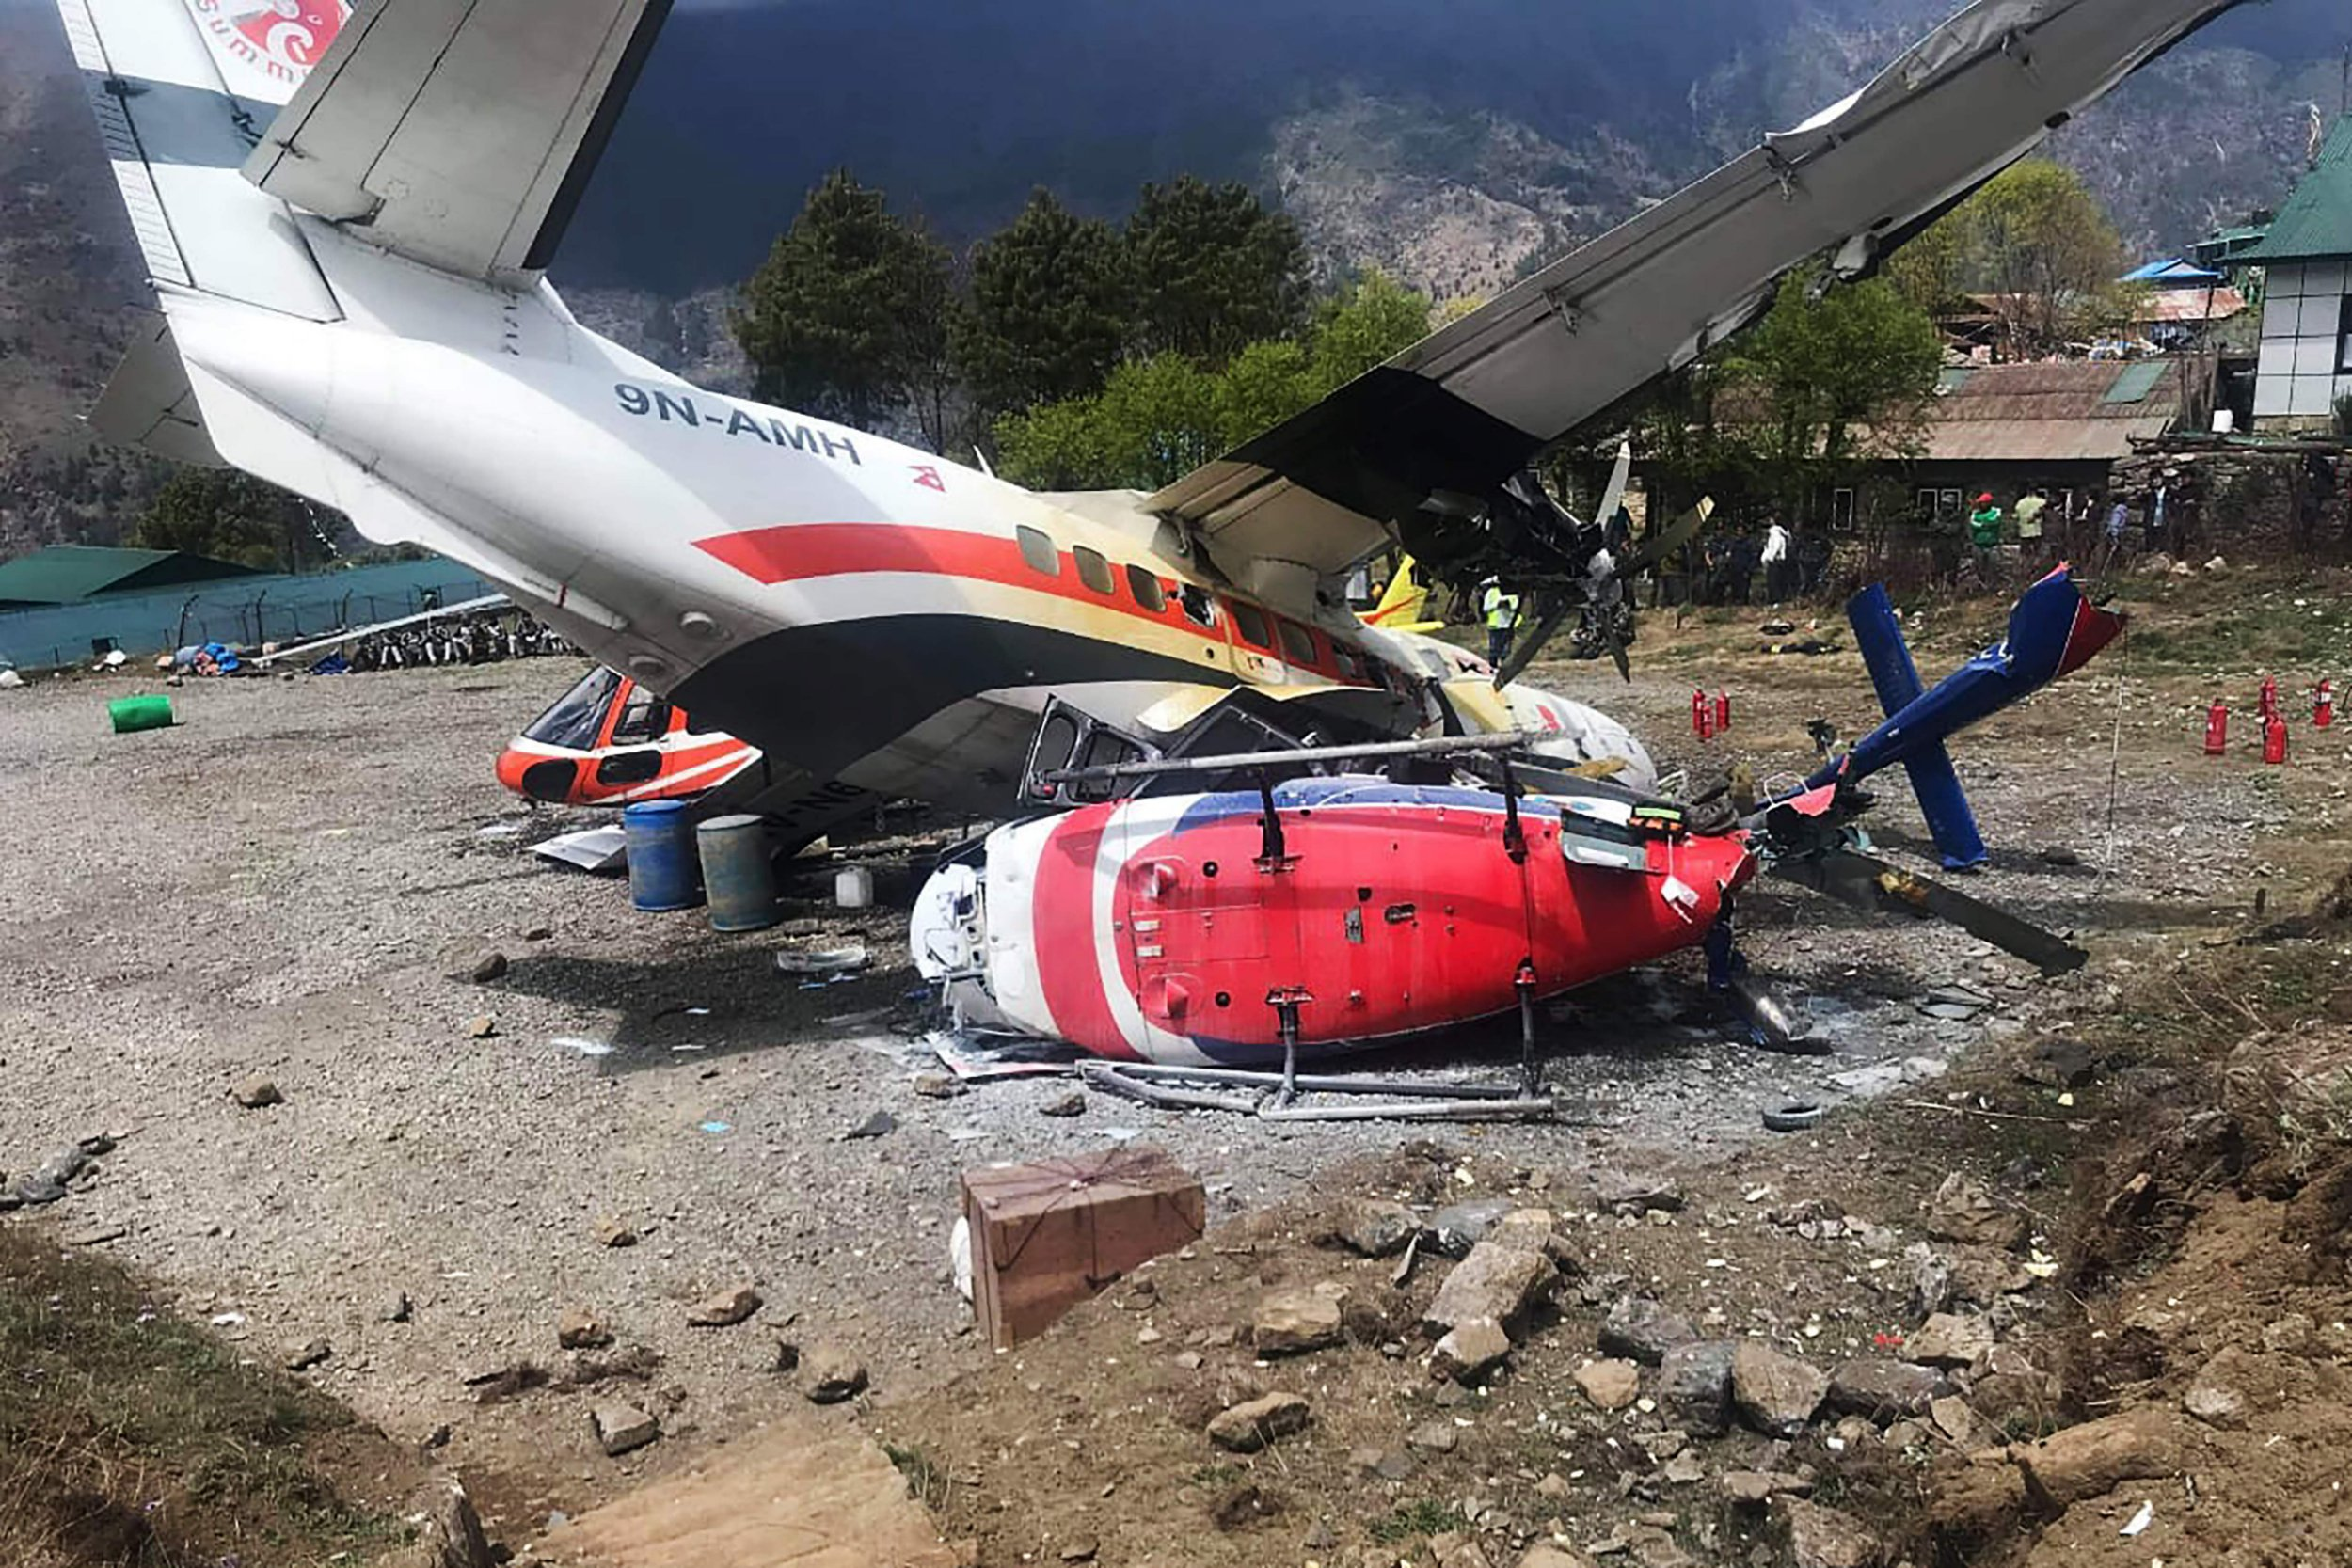 TOPSHOT - A Summit Air Let L-410 Turbolet aircraft bound for Kathmandu is seen after it hit two helicopters during take off at Lukla airport, the main gateway to the Everest region. - A small plane veered off the runway and hit two helicopters while taking off near Mount Everest on April 14, killing three people and injuring three, officials said. (Photo by STR / AFP)STR/AFP/Getty Images